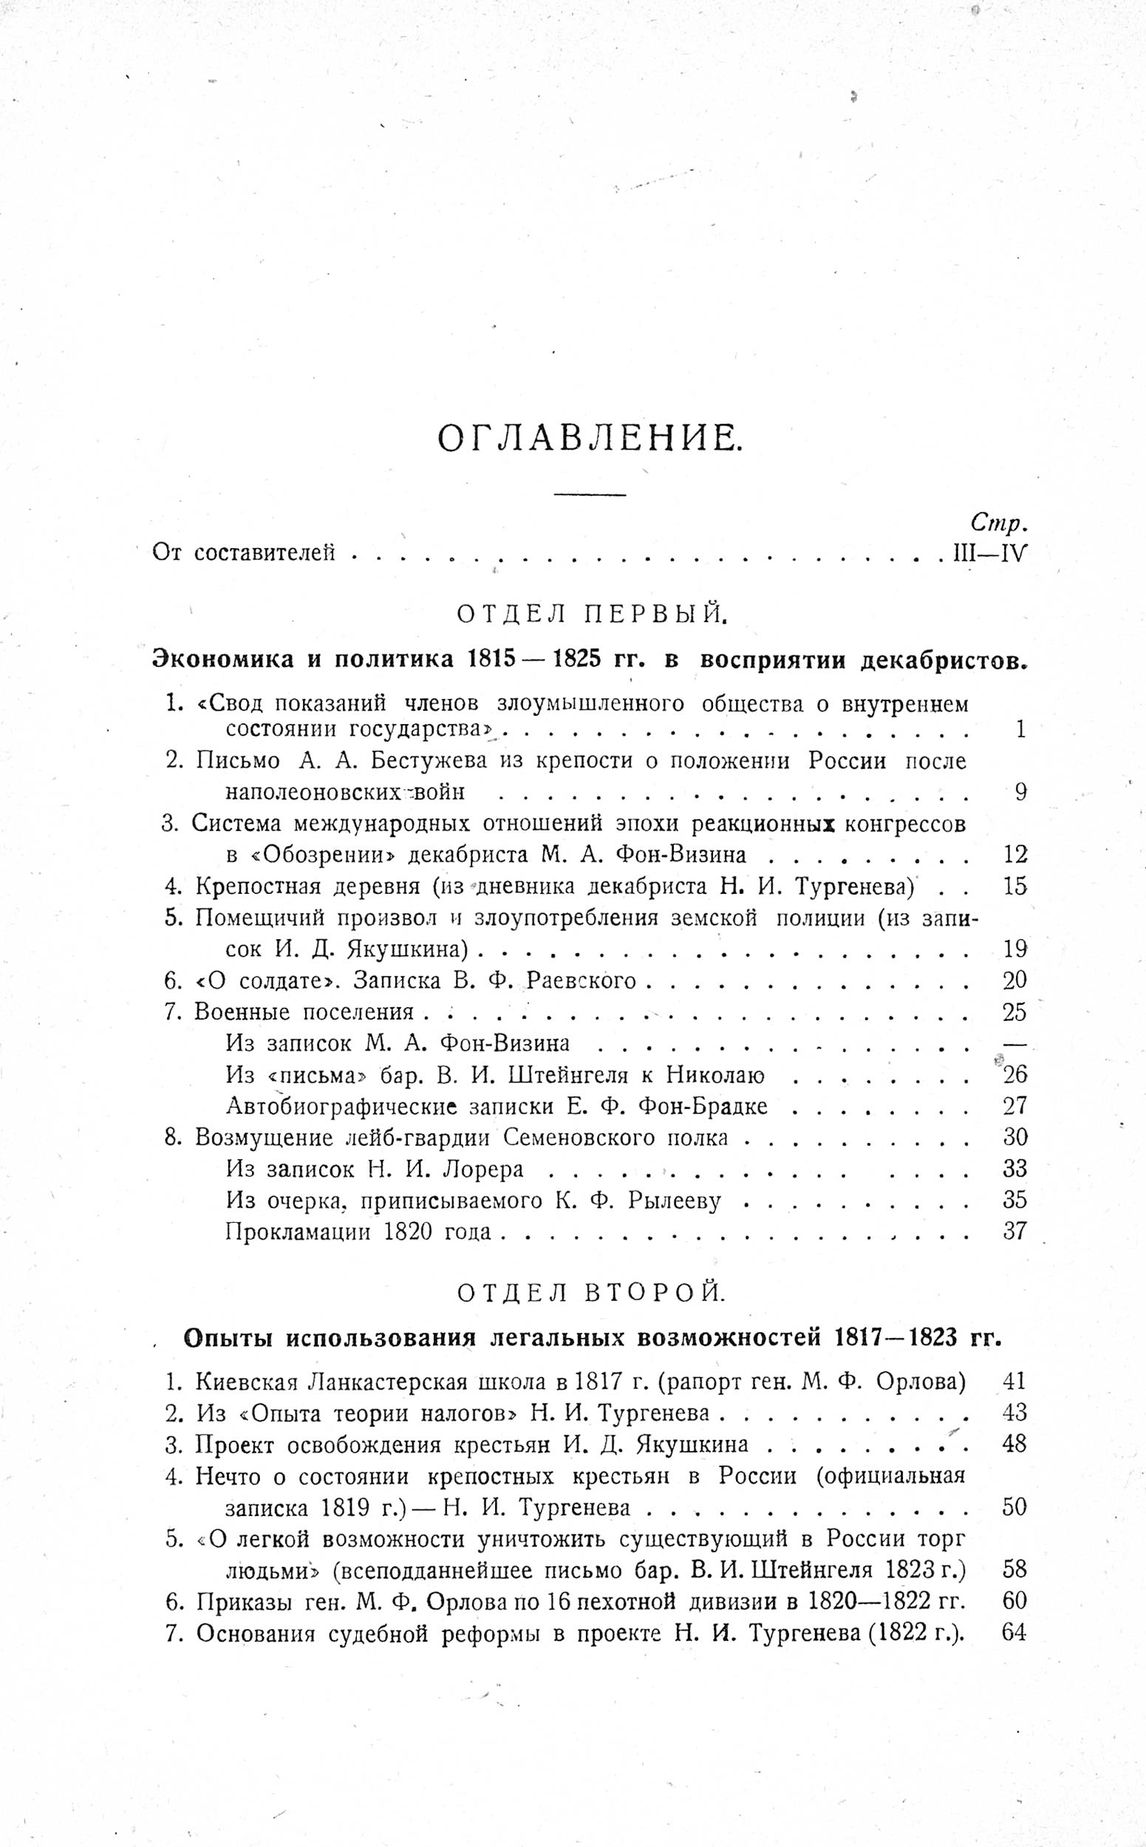 http://elib.shpl.ru/pages/626061/zooms/7